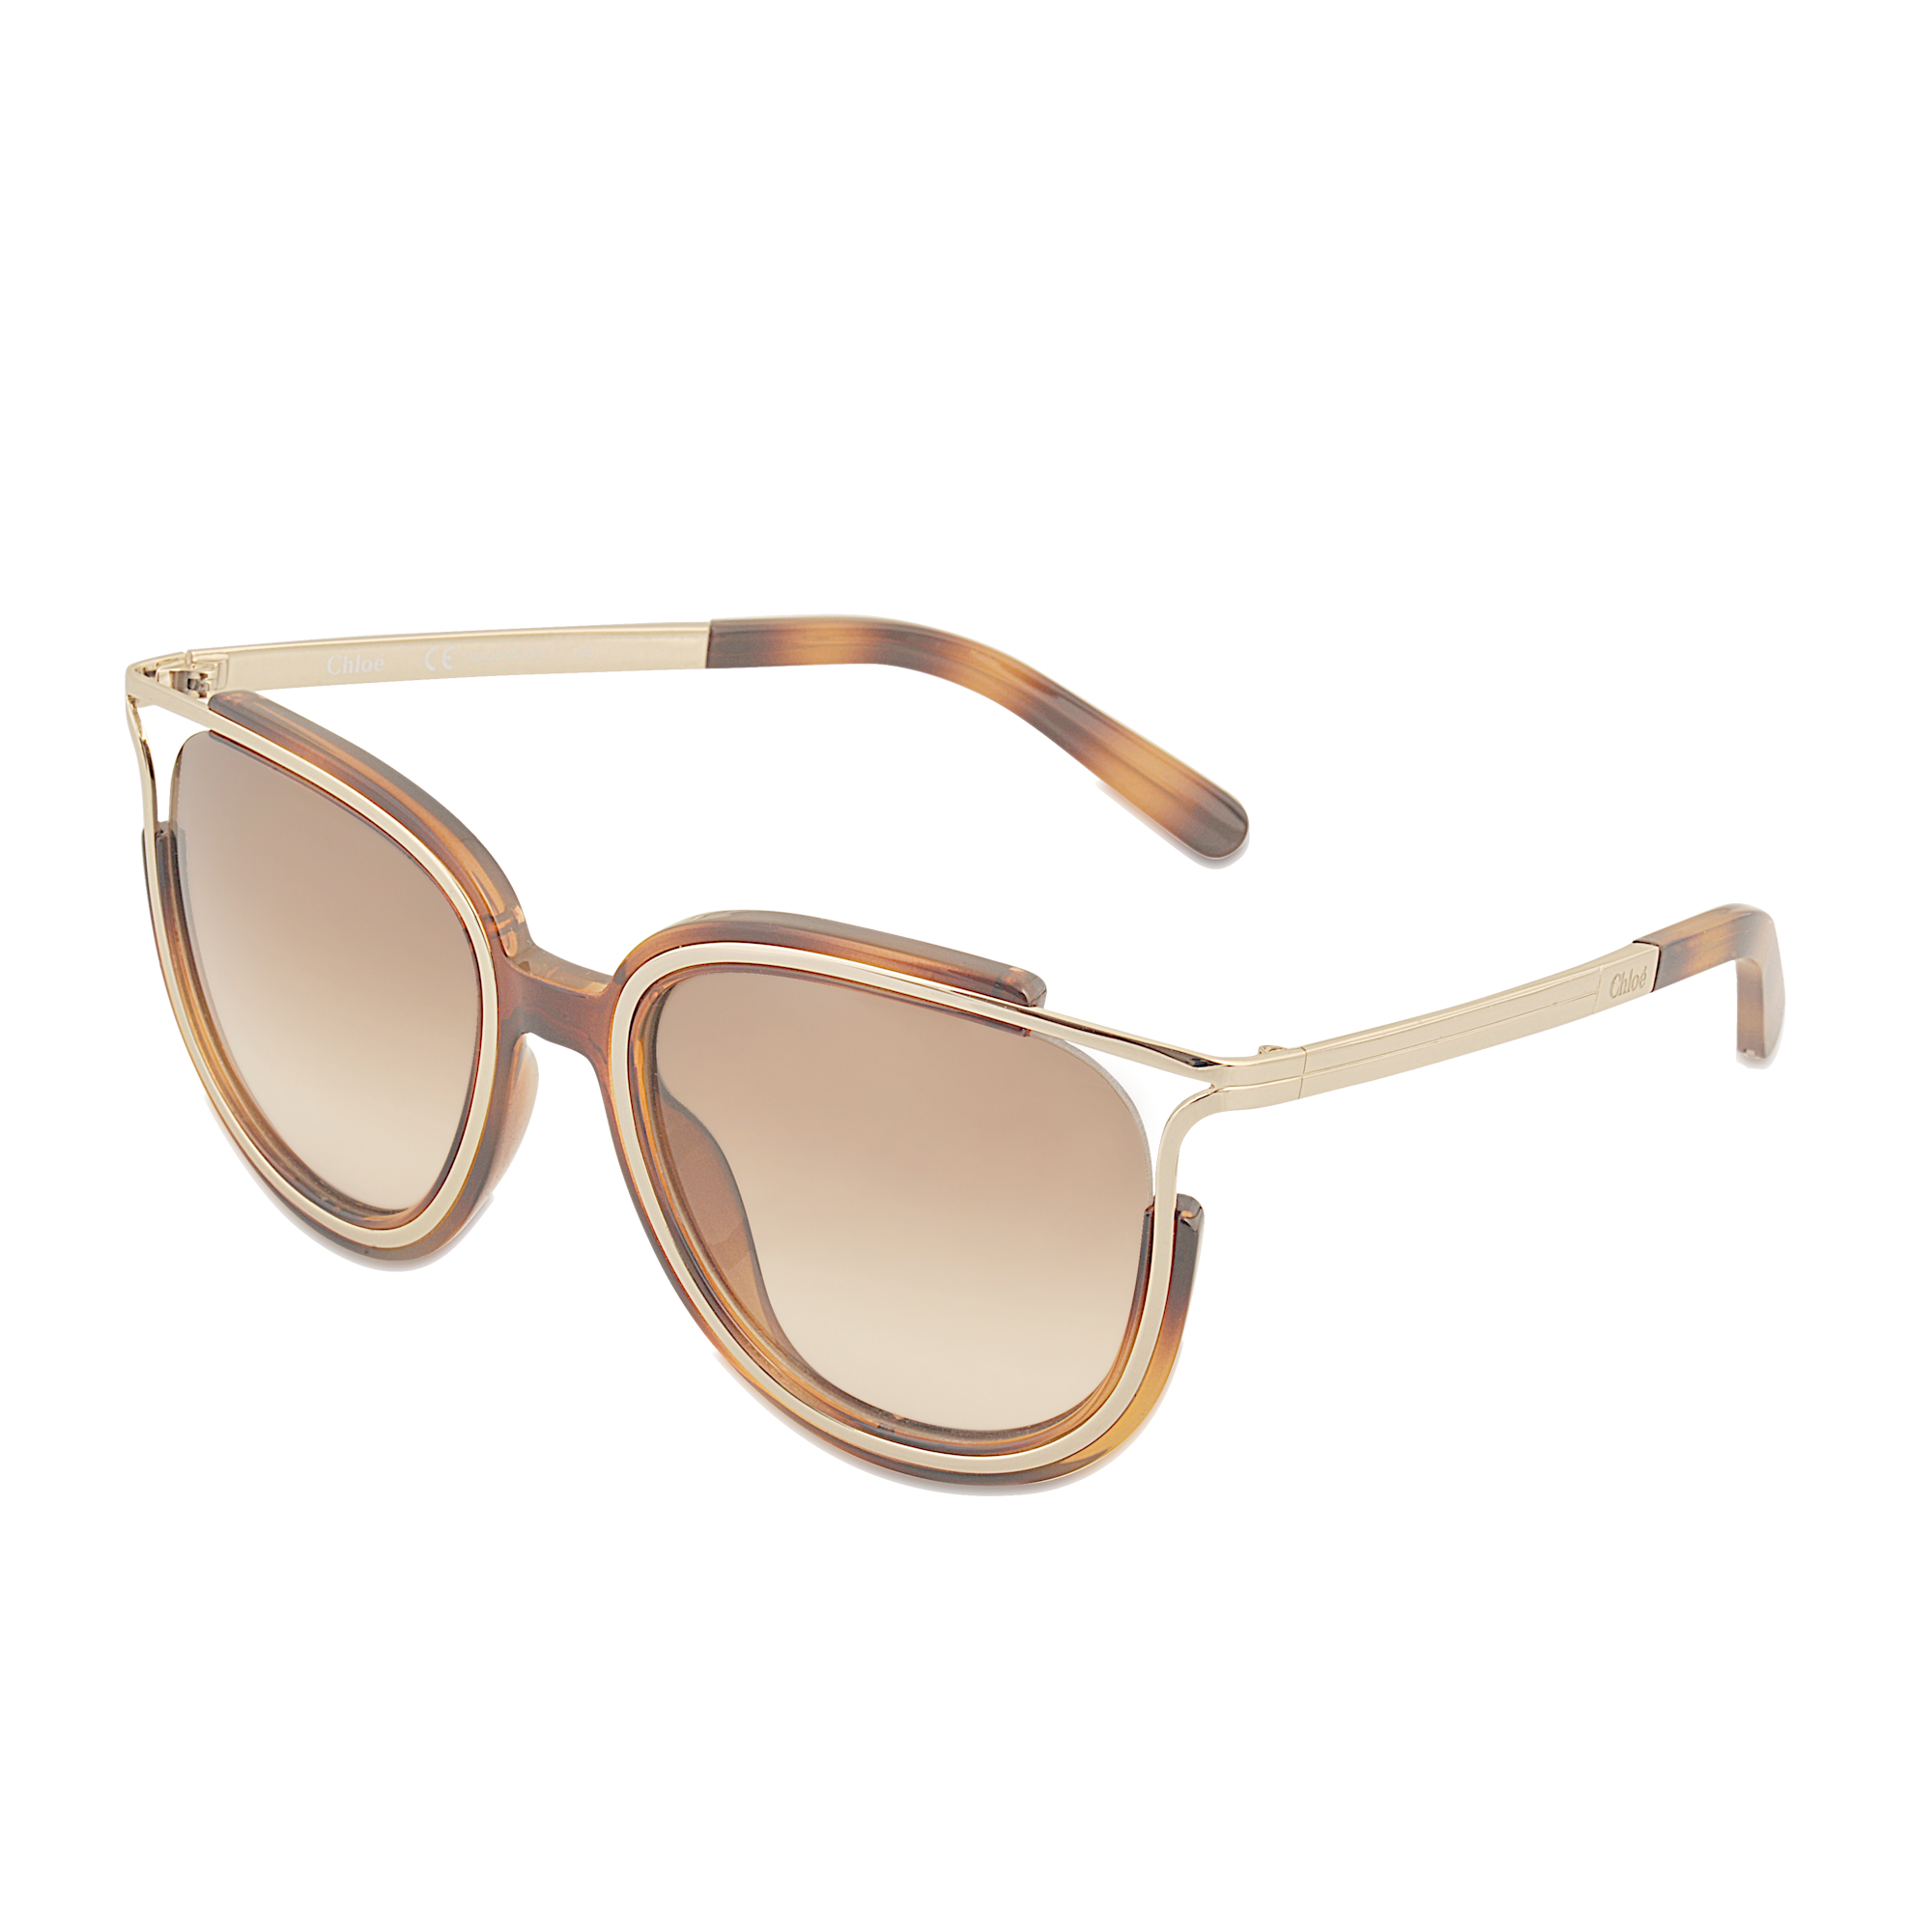 5e9eae0ab02 Lyst - Chloé Ce688s Jayme Sunglasses in Brown